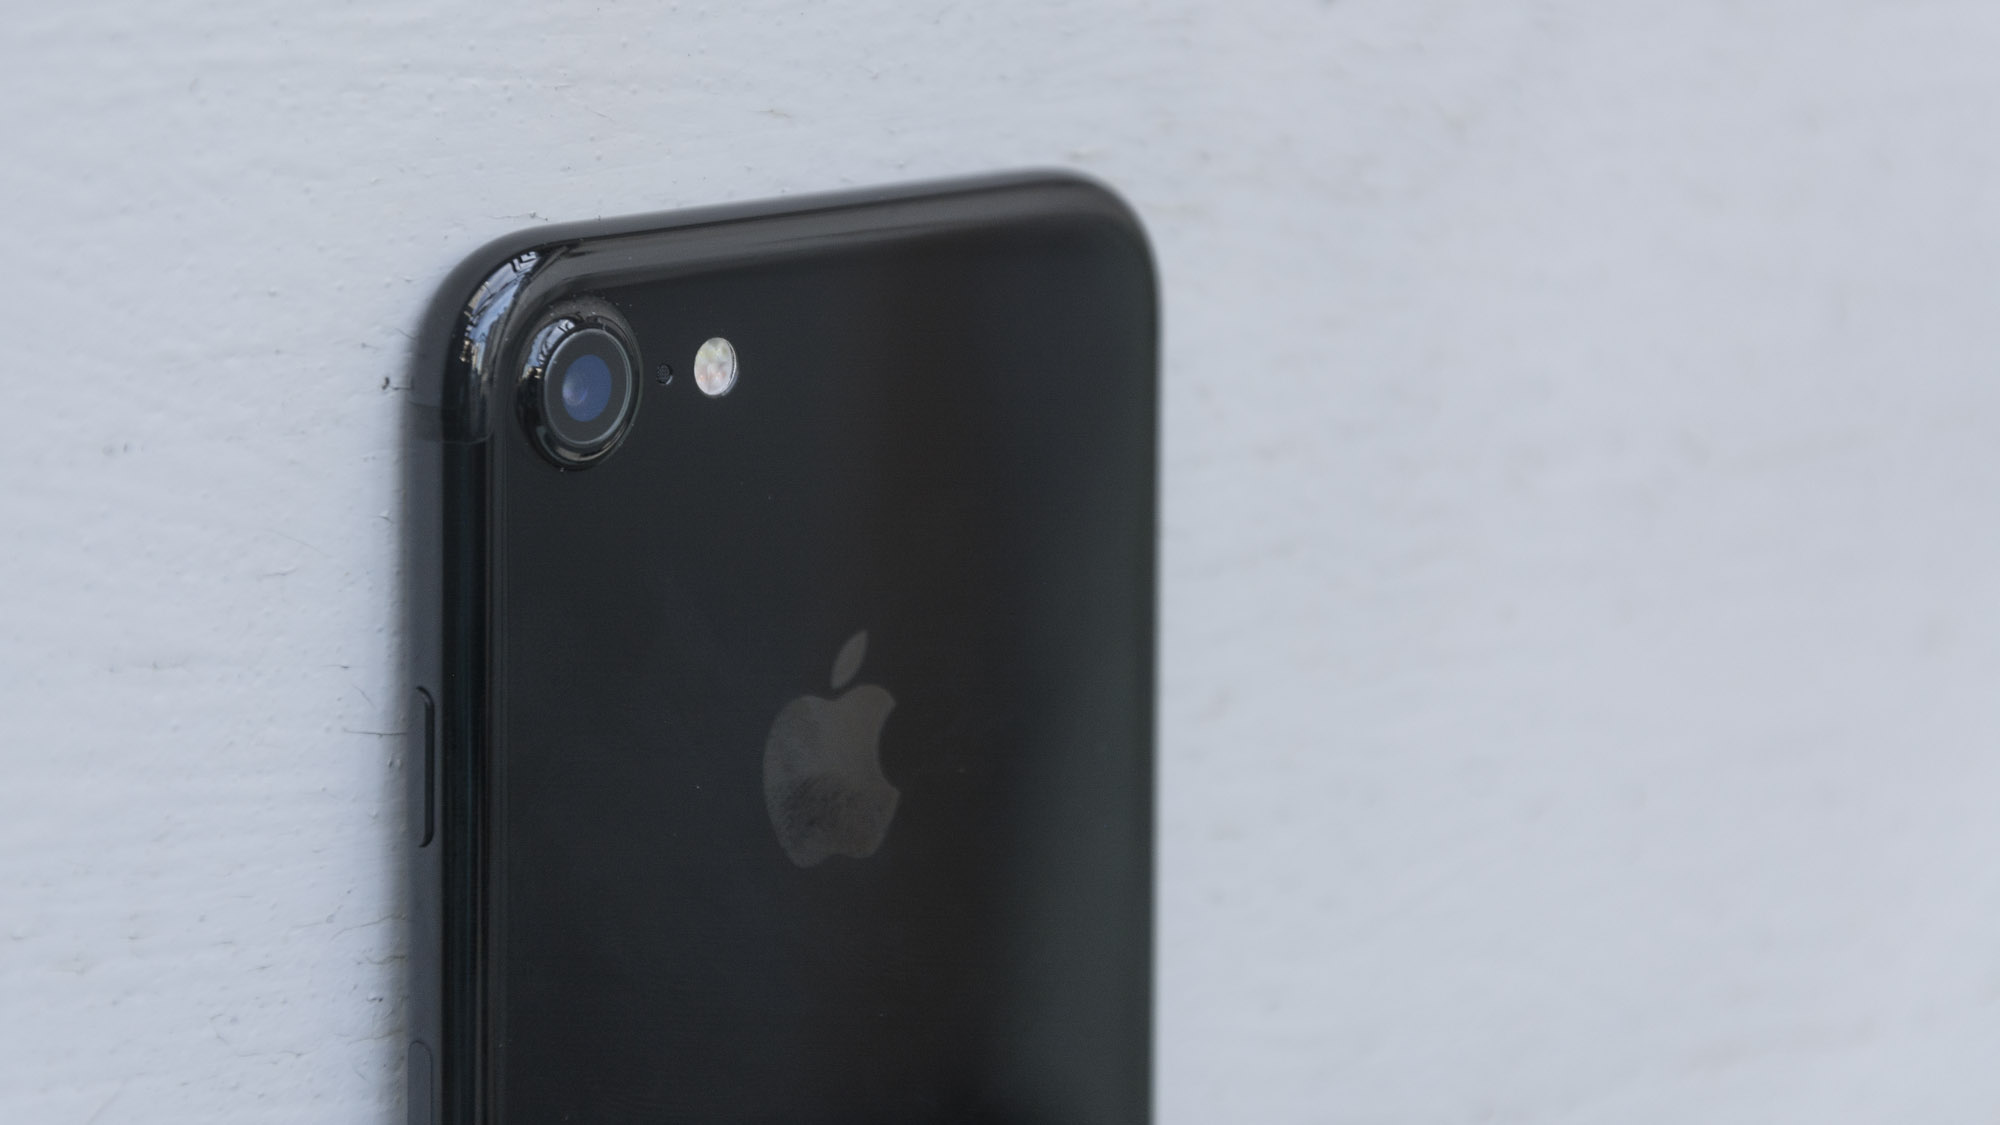 iphone 7 pictures expert reviews